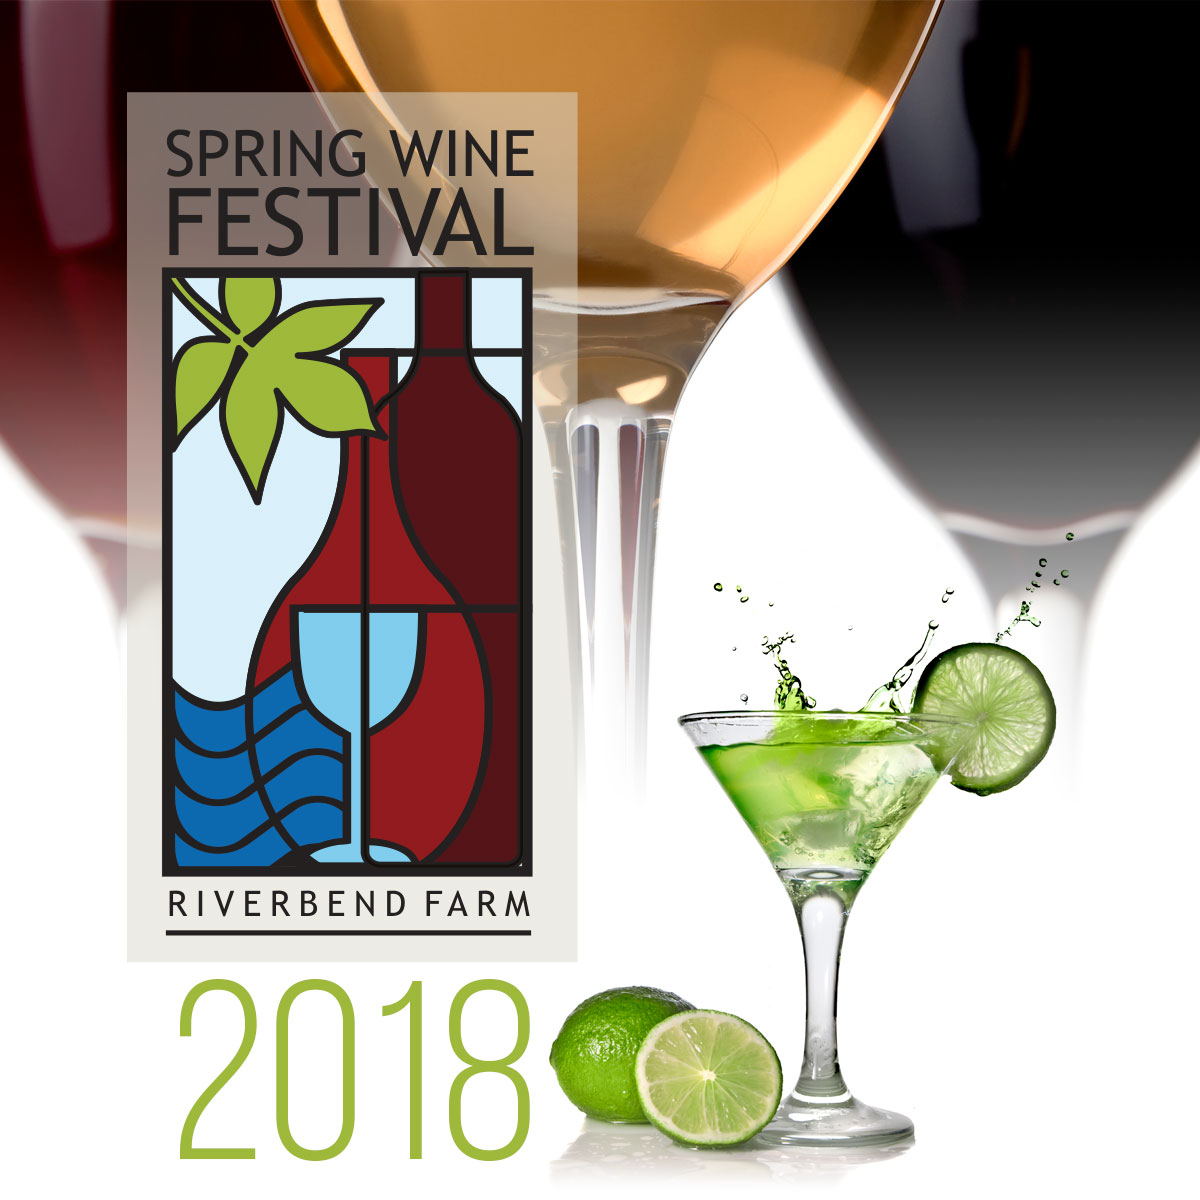 spring-wine-website